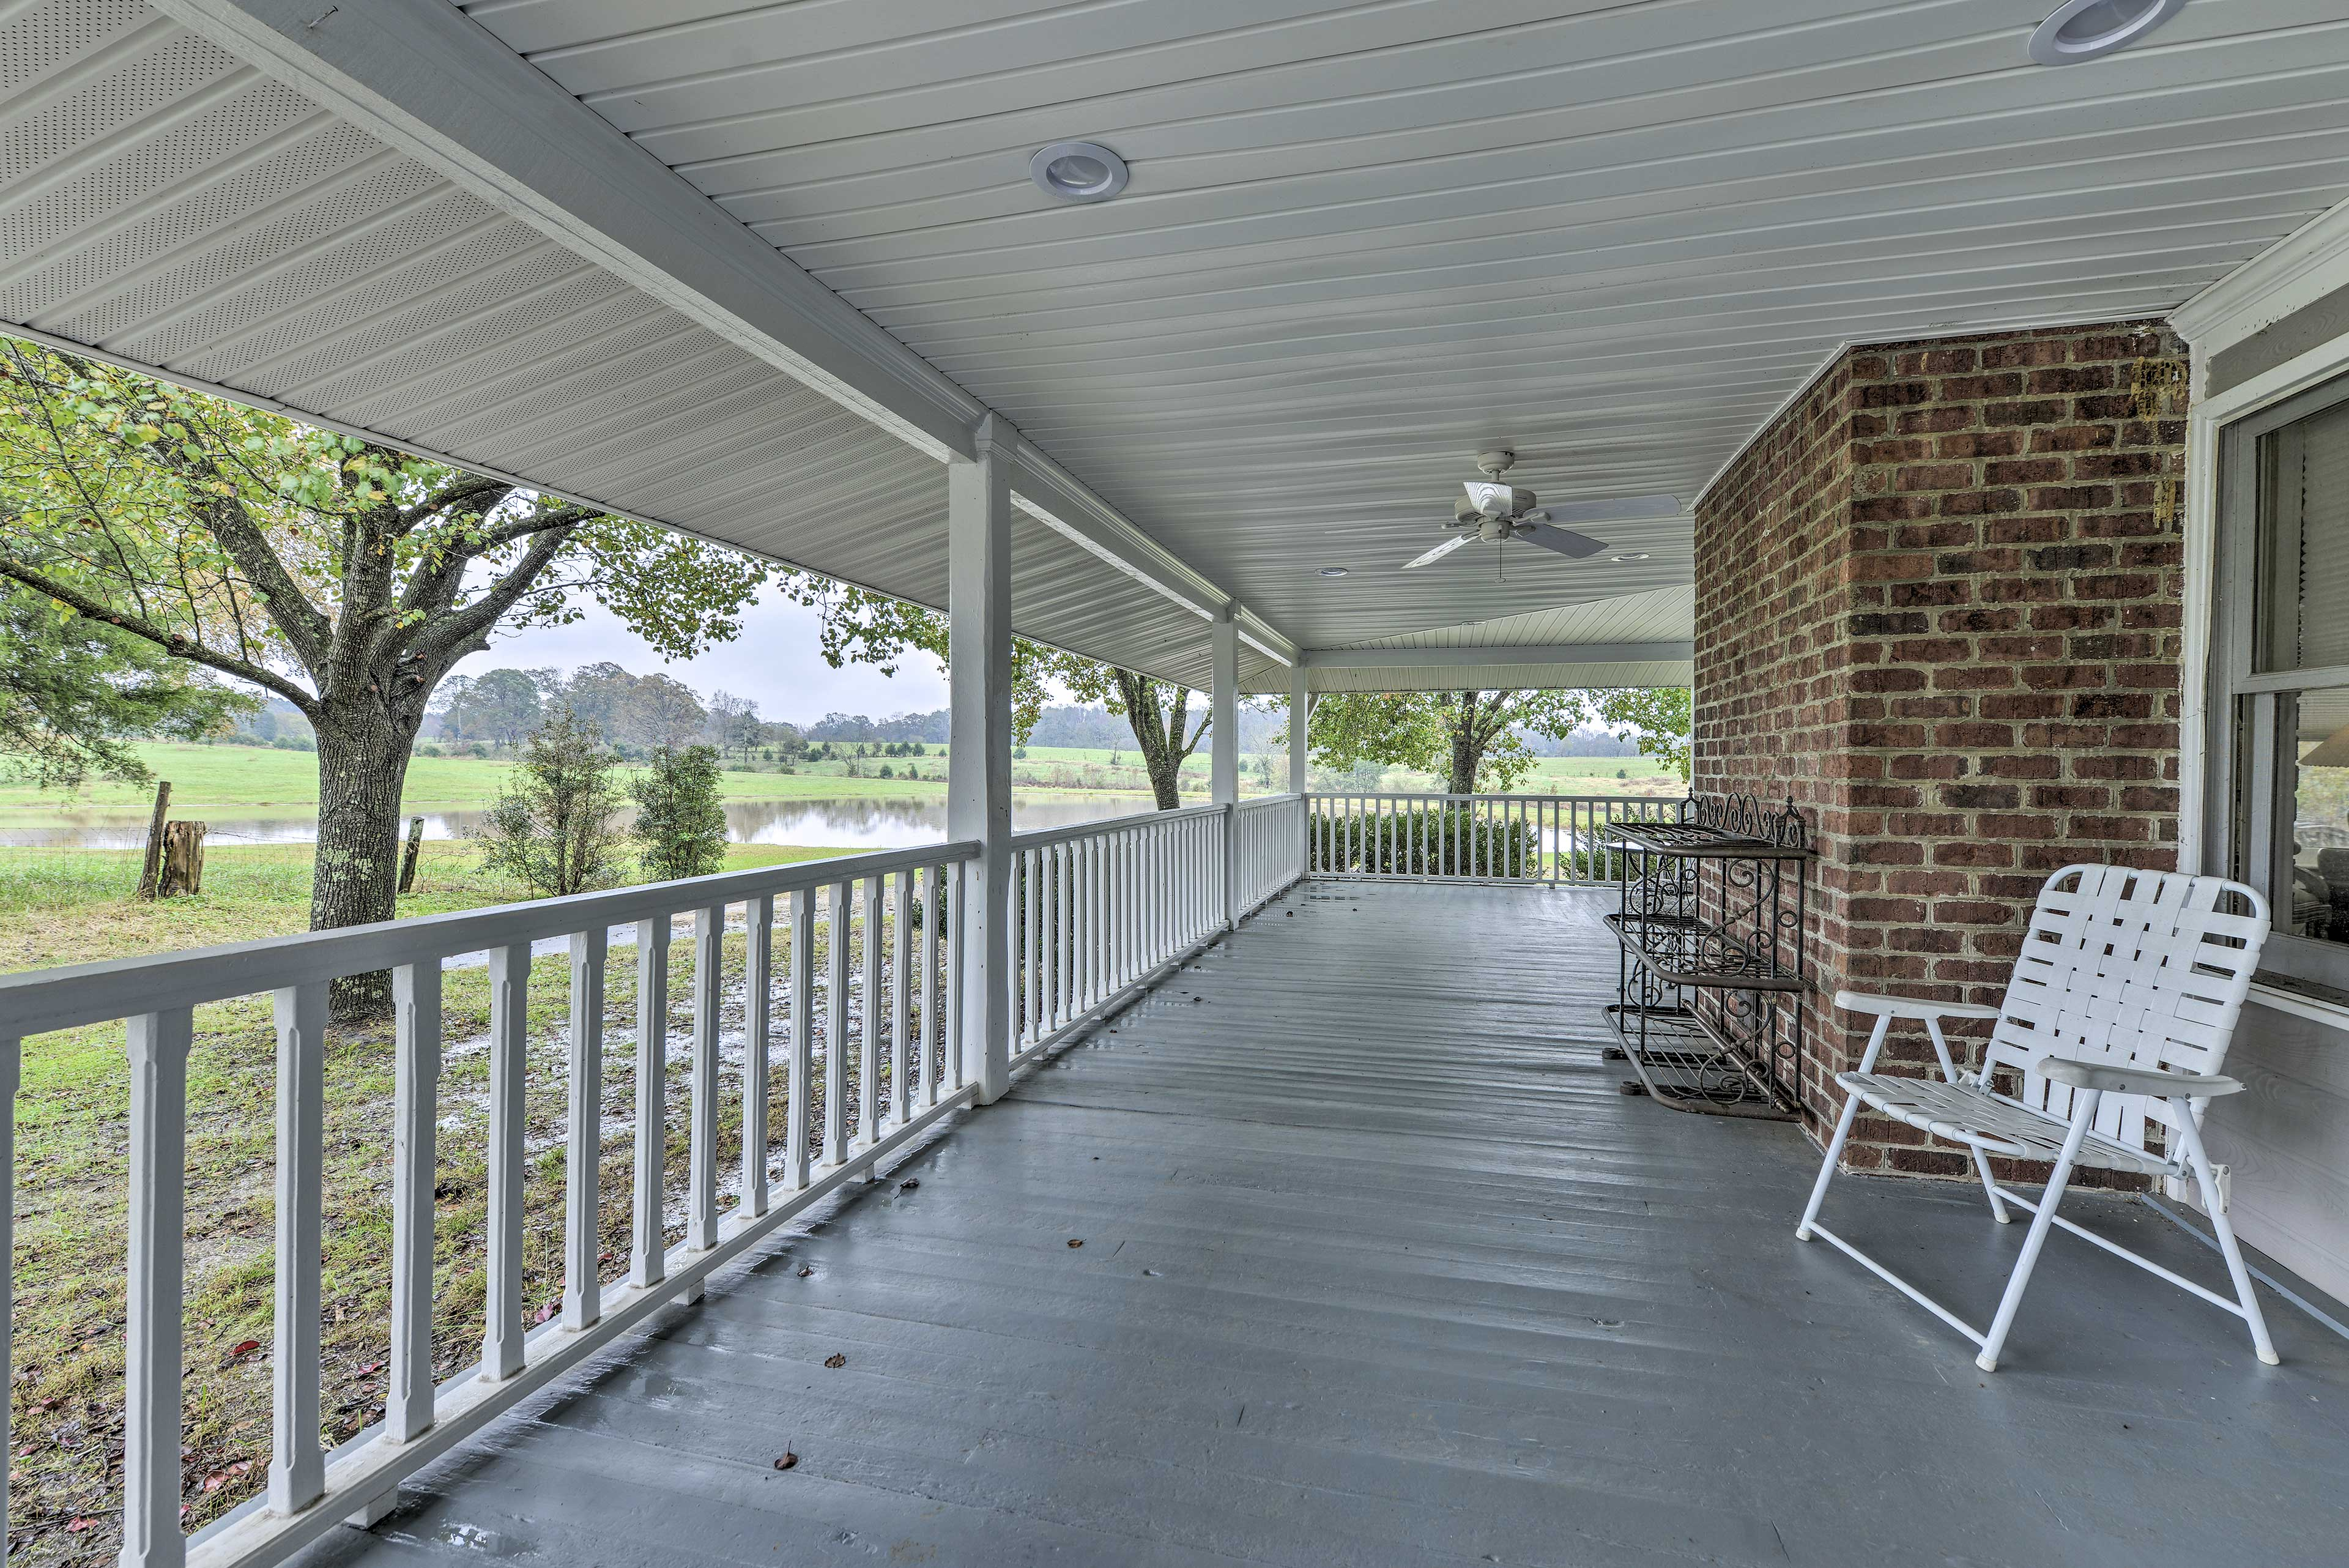 Take in the scenery from the spacious porch.